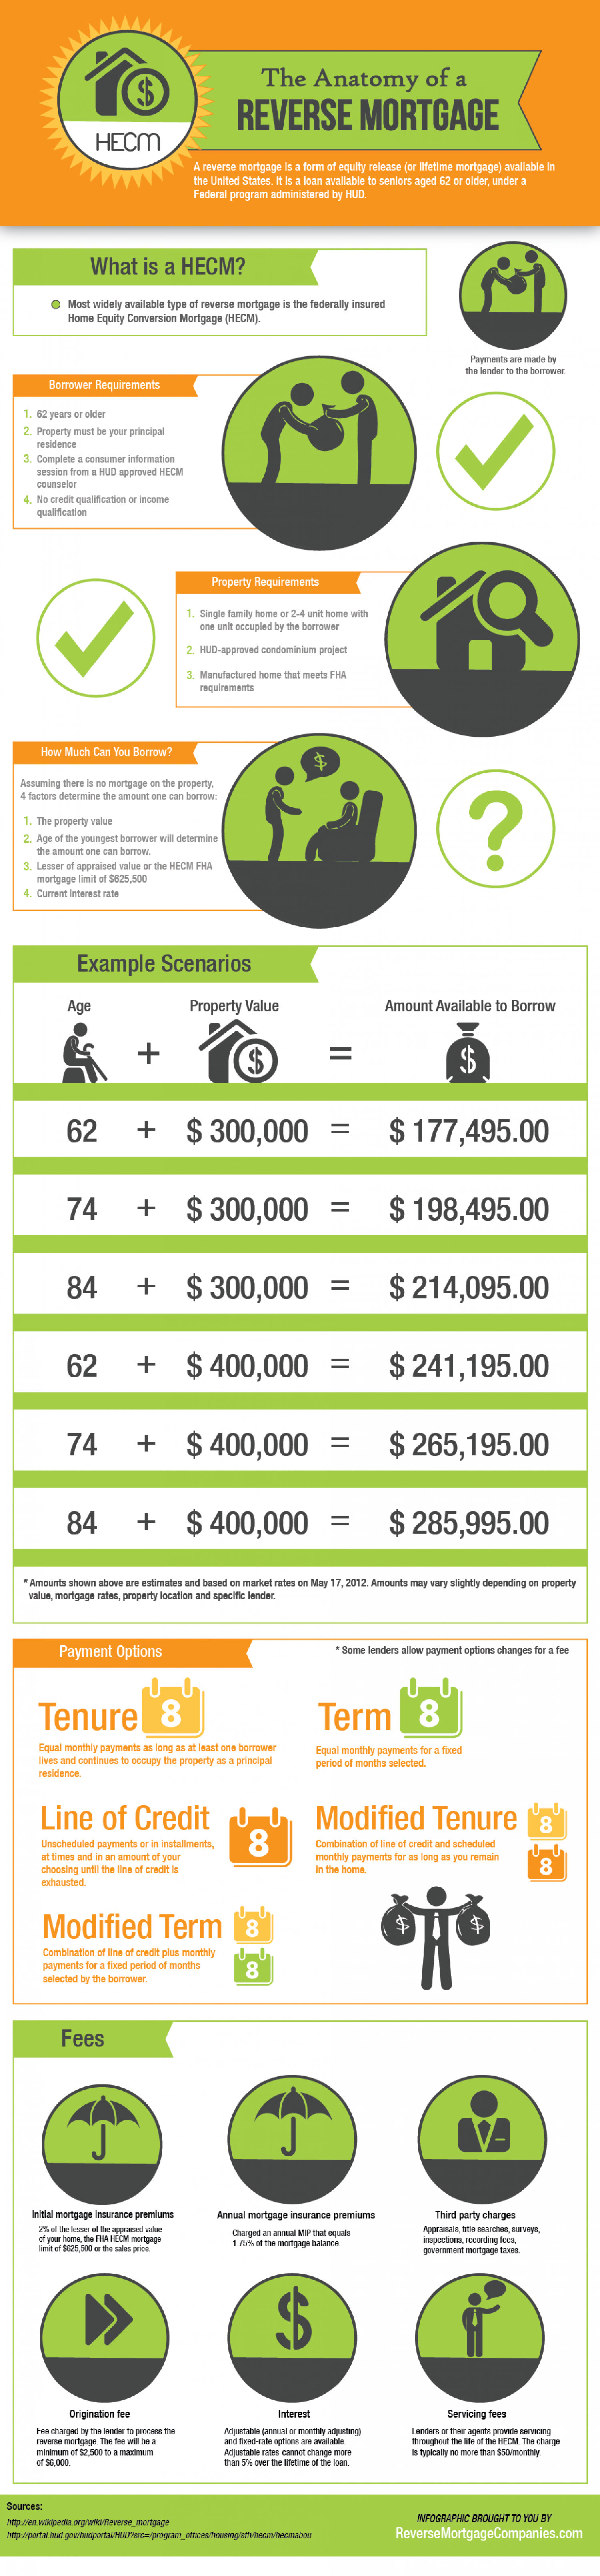 Anatomy of a Reverse Mortgage Infographic